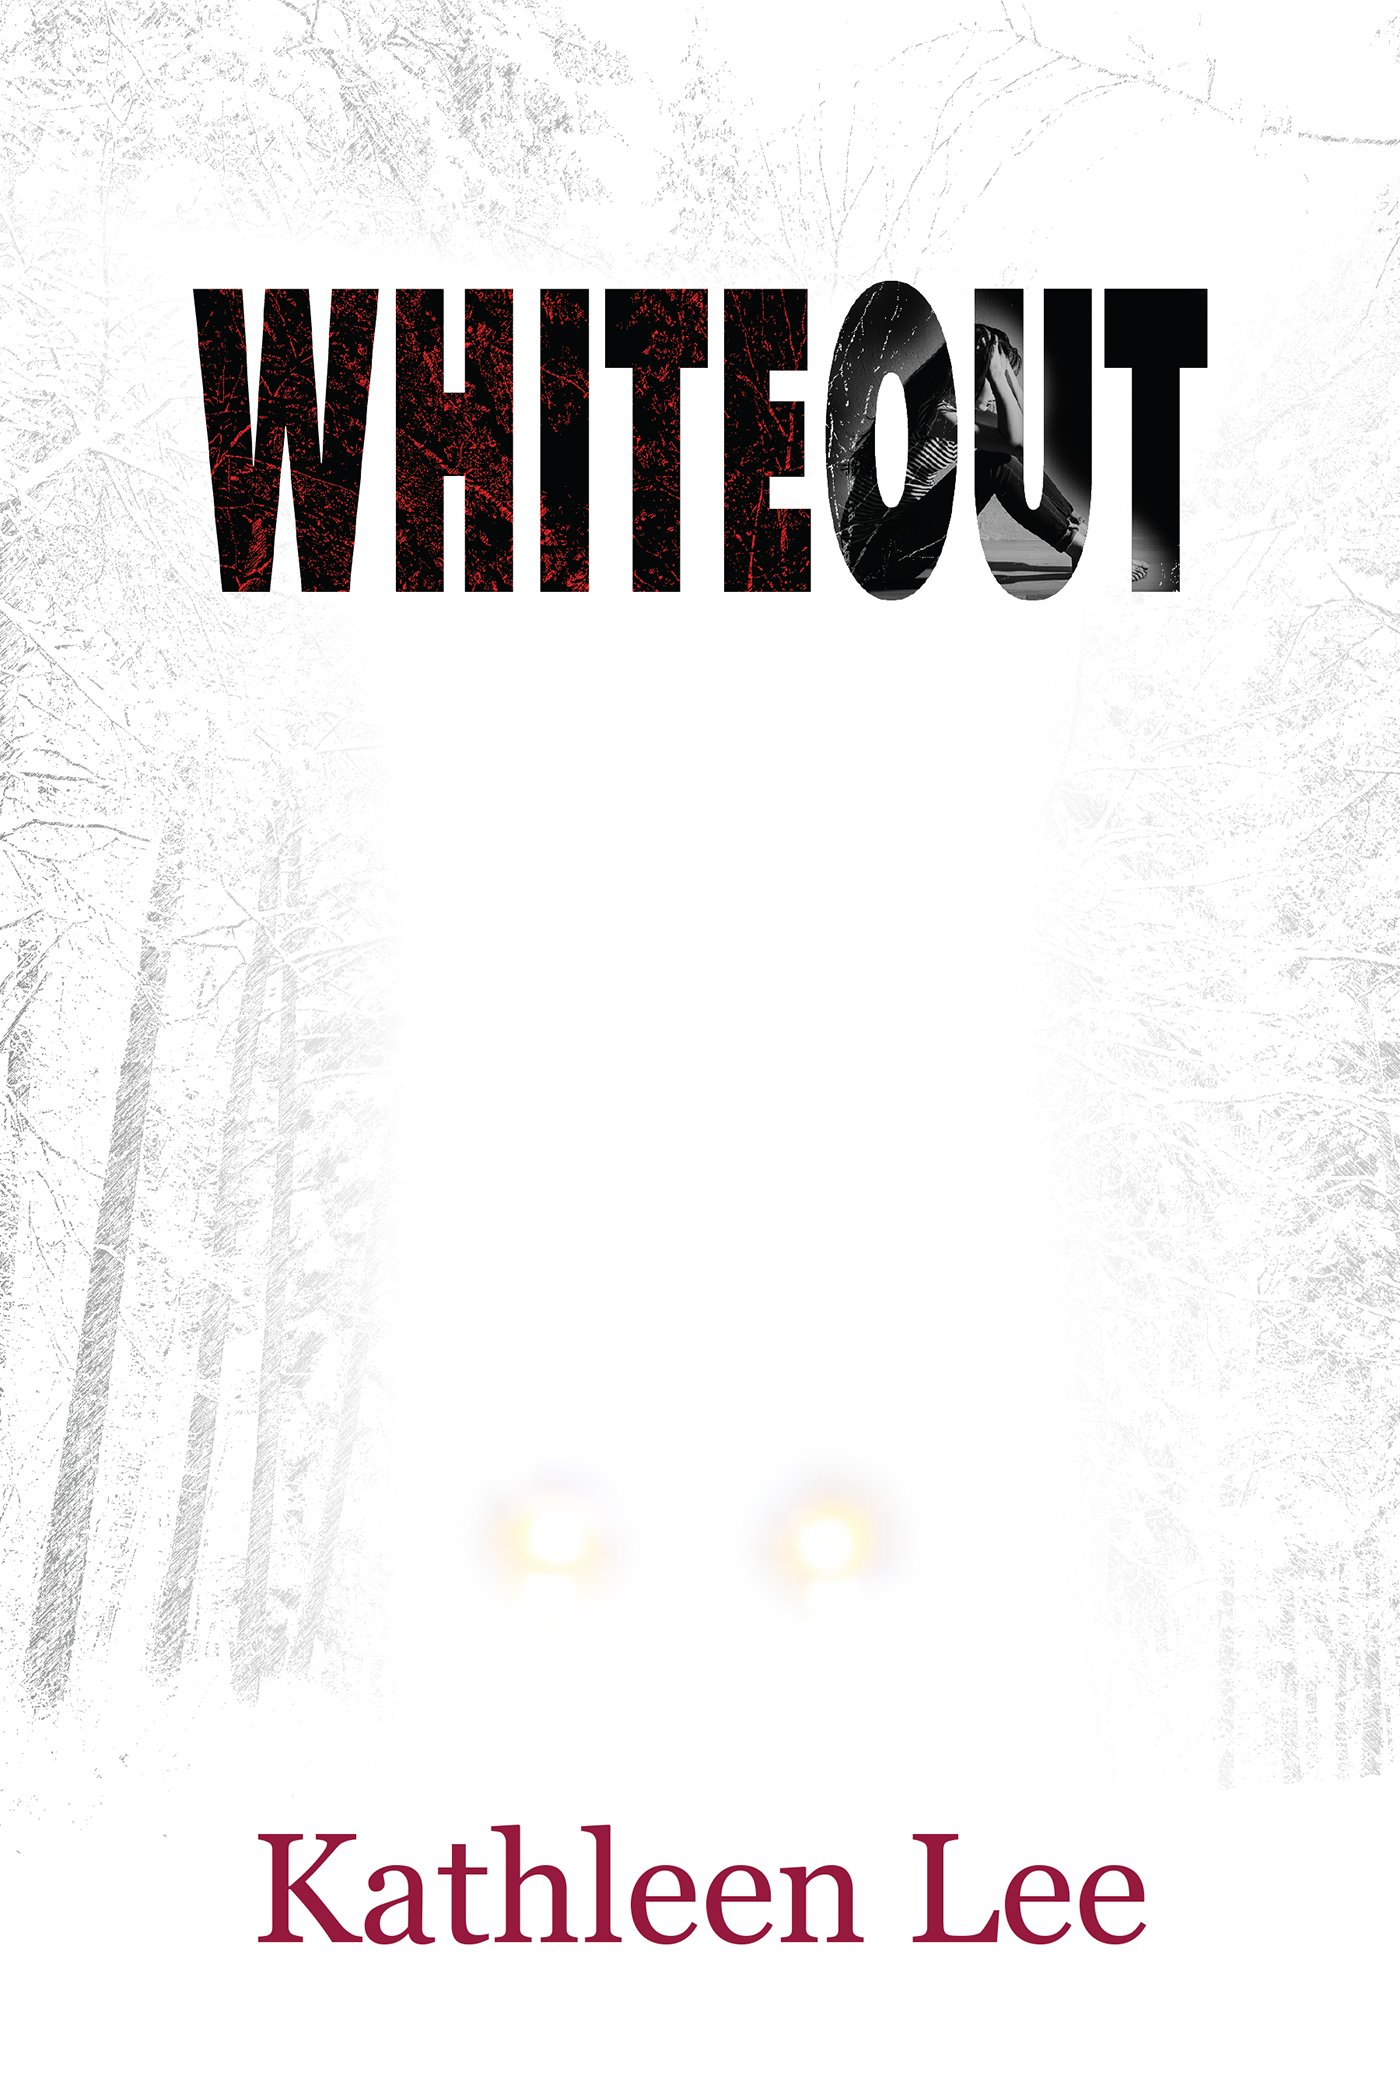 Whiteout by Kathleen Lee